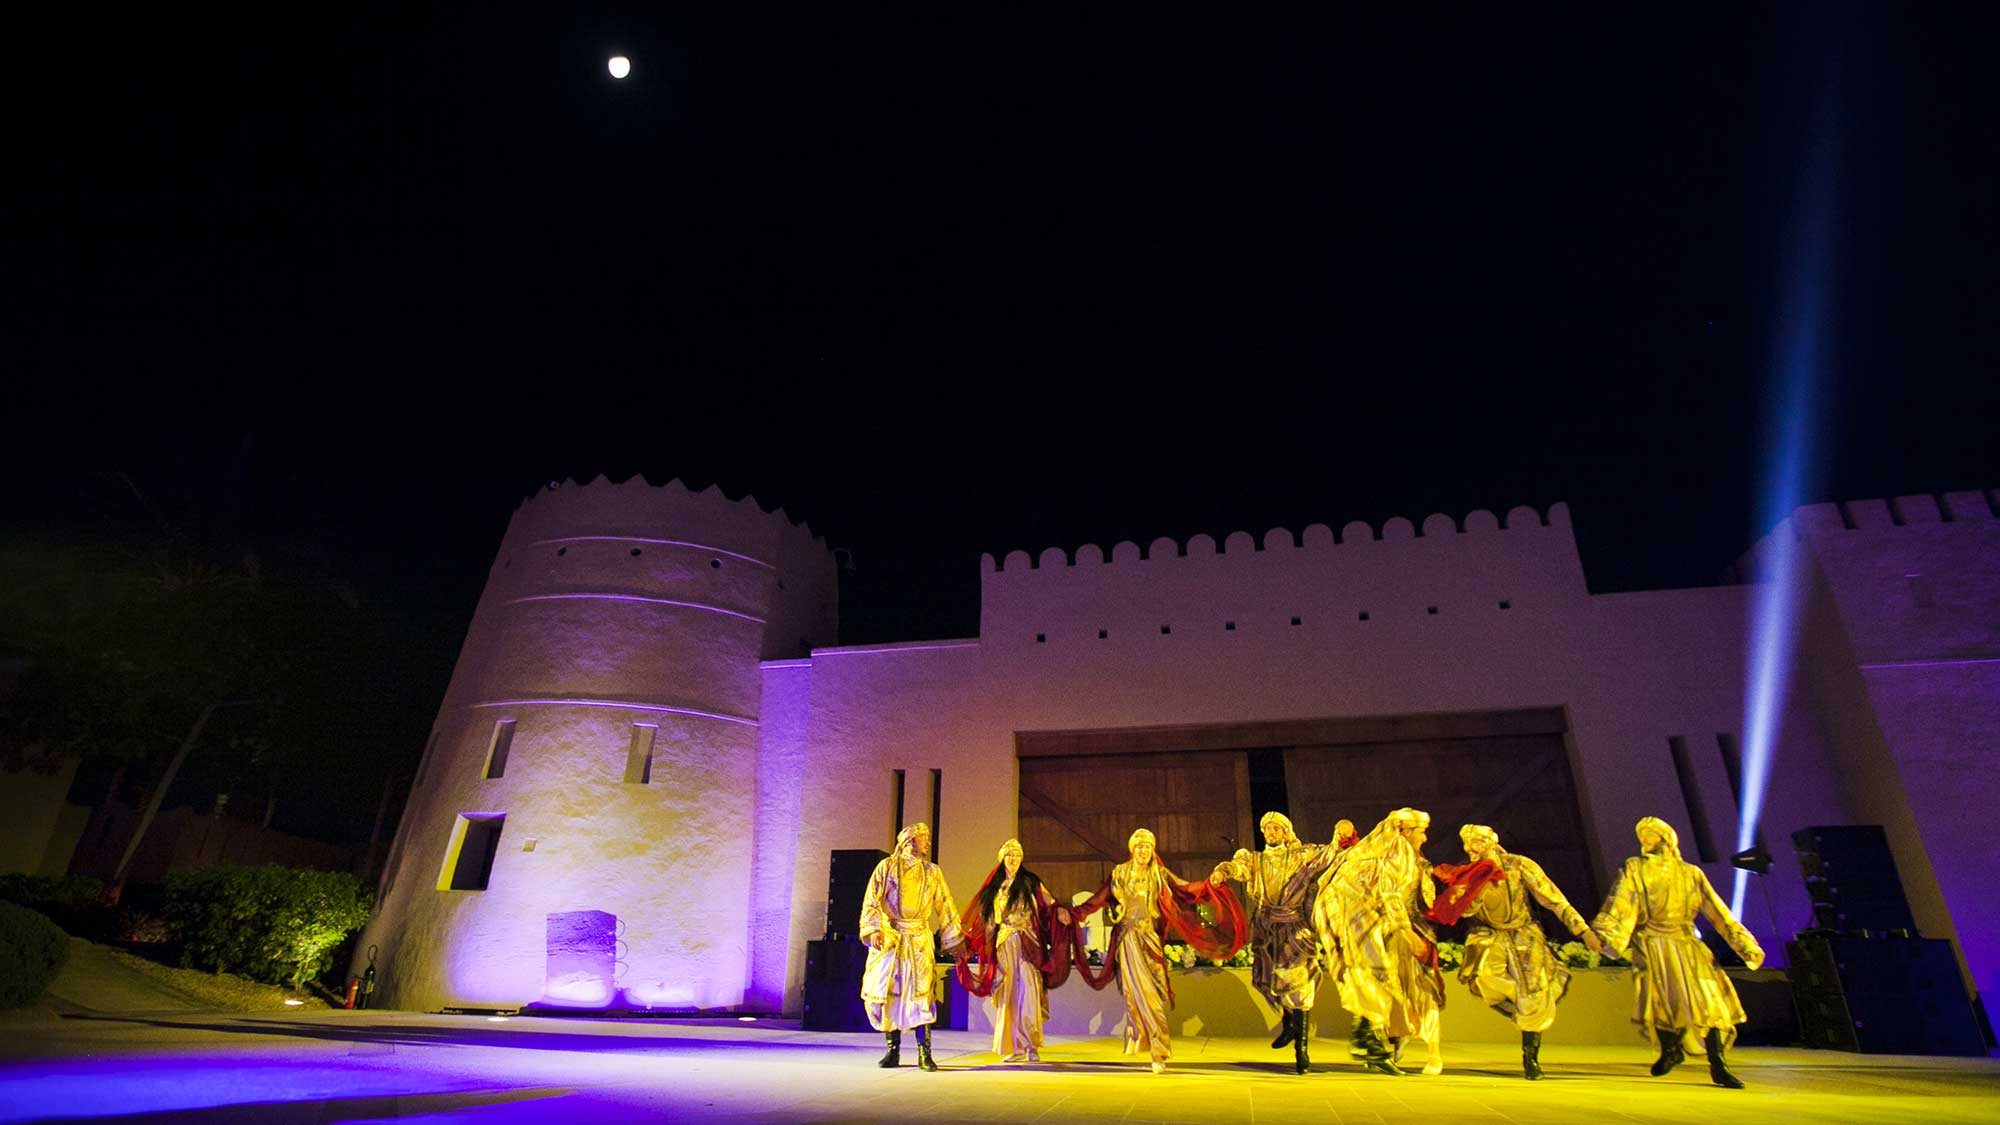 dubai_wedding_0022